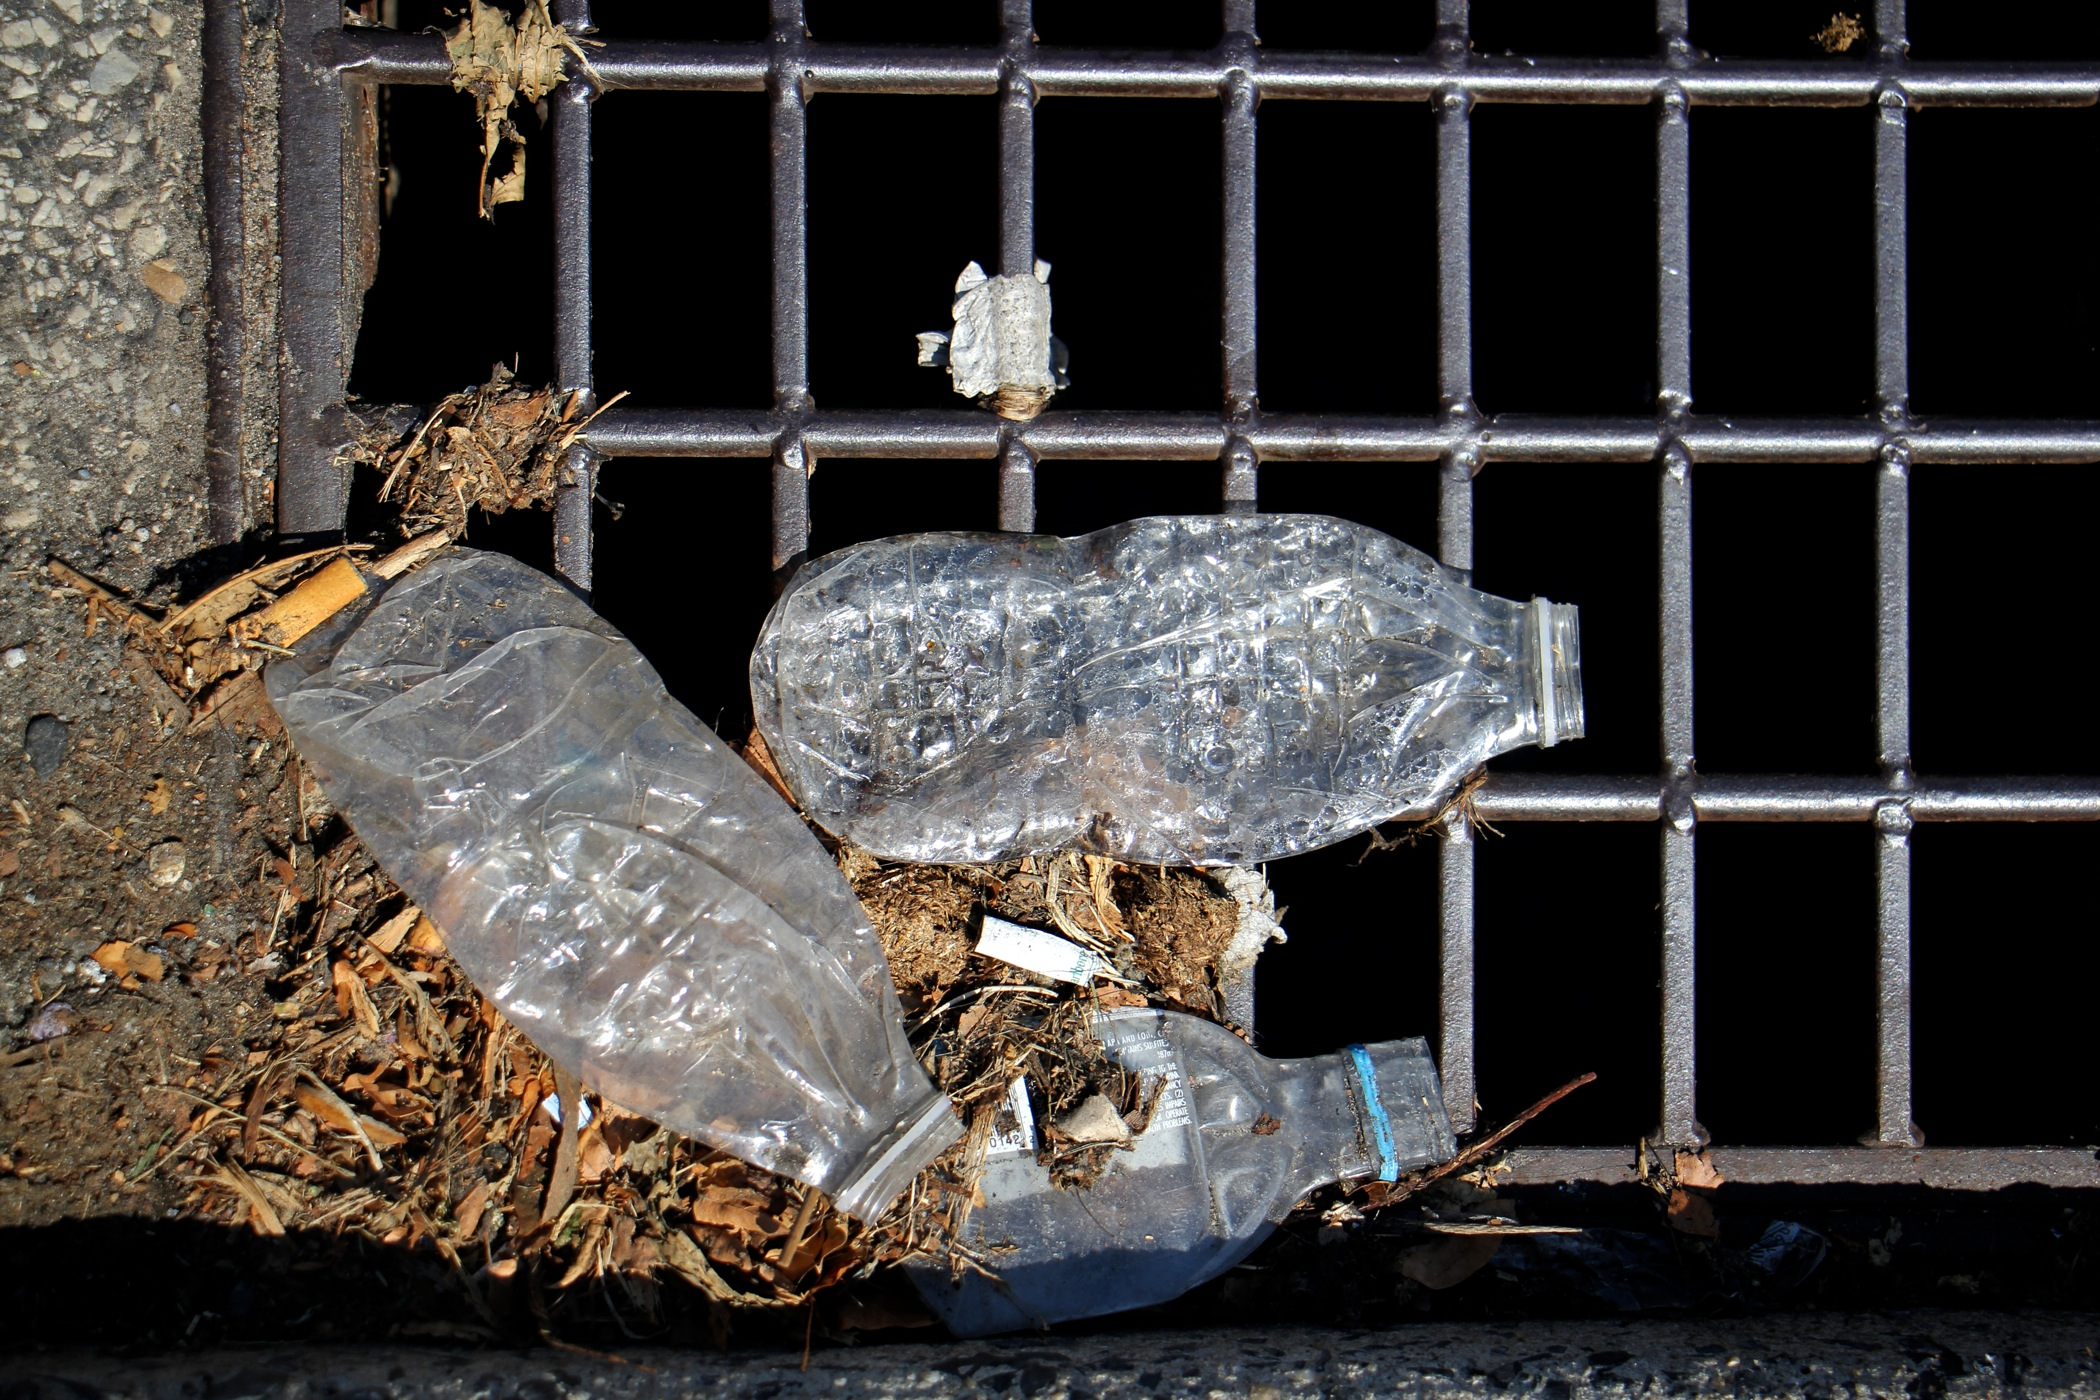 Plastic bottles accumulate on the grate of a storm drain.